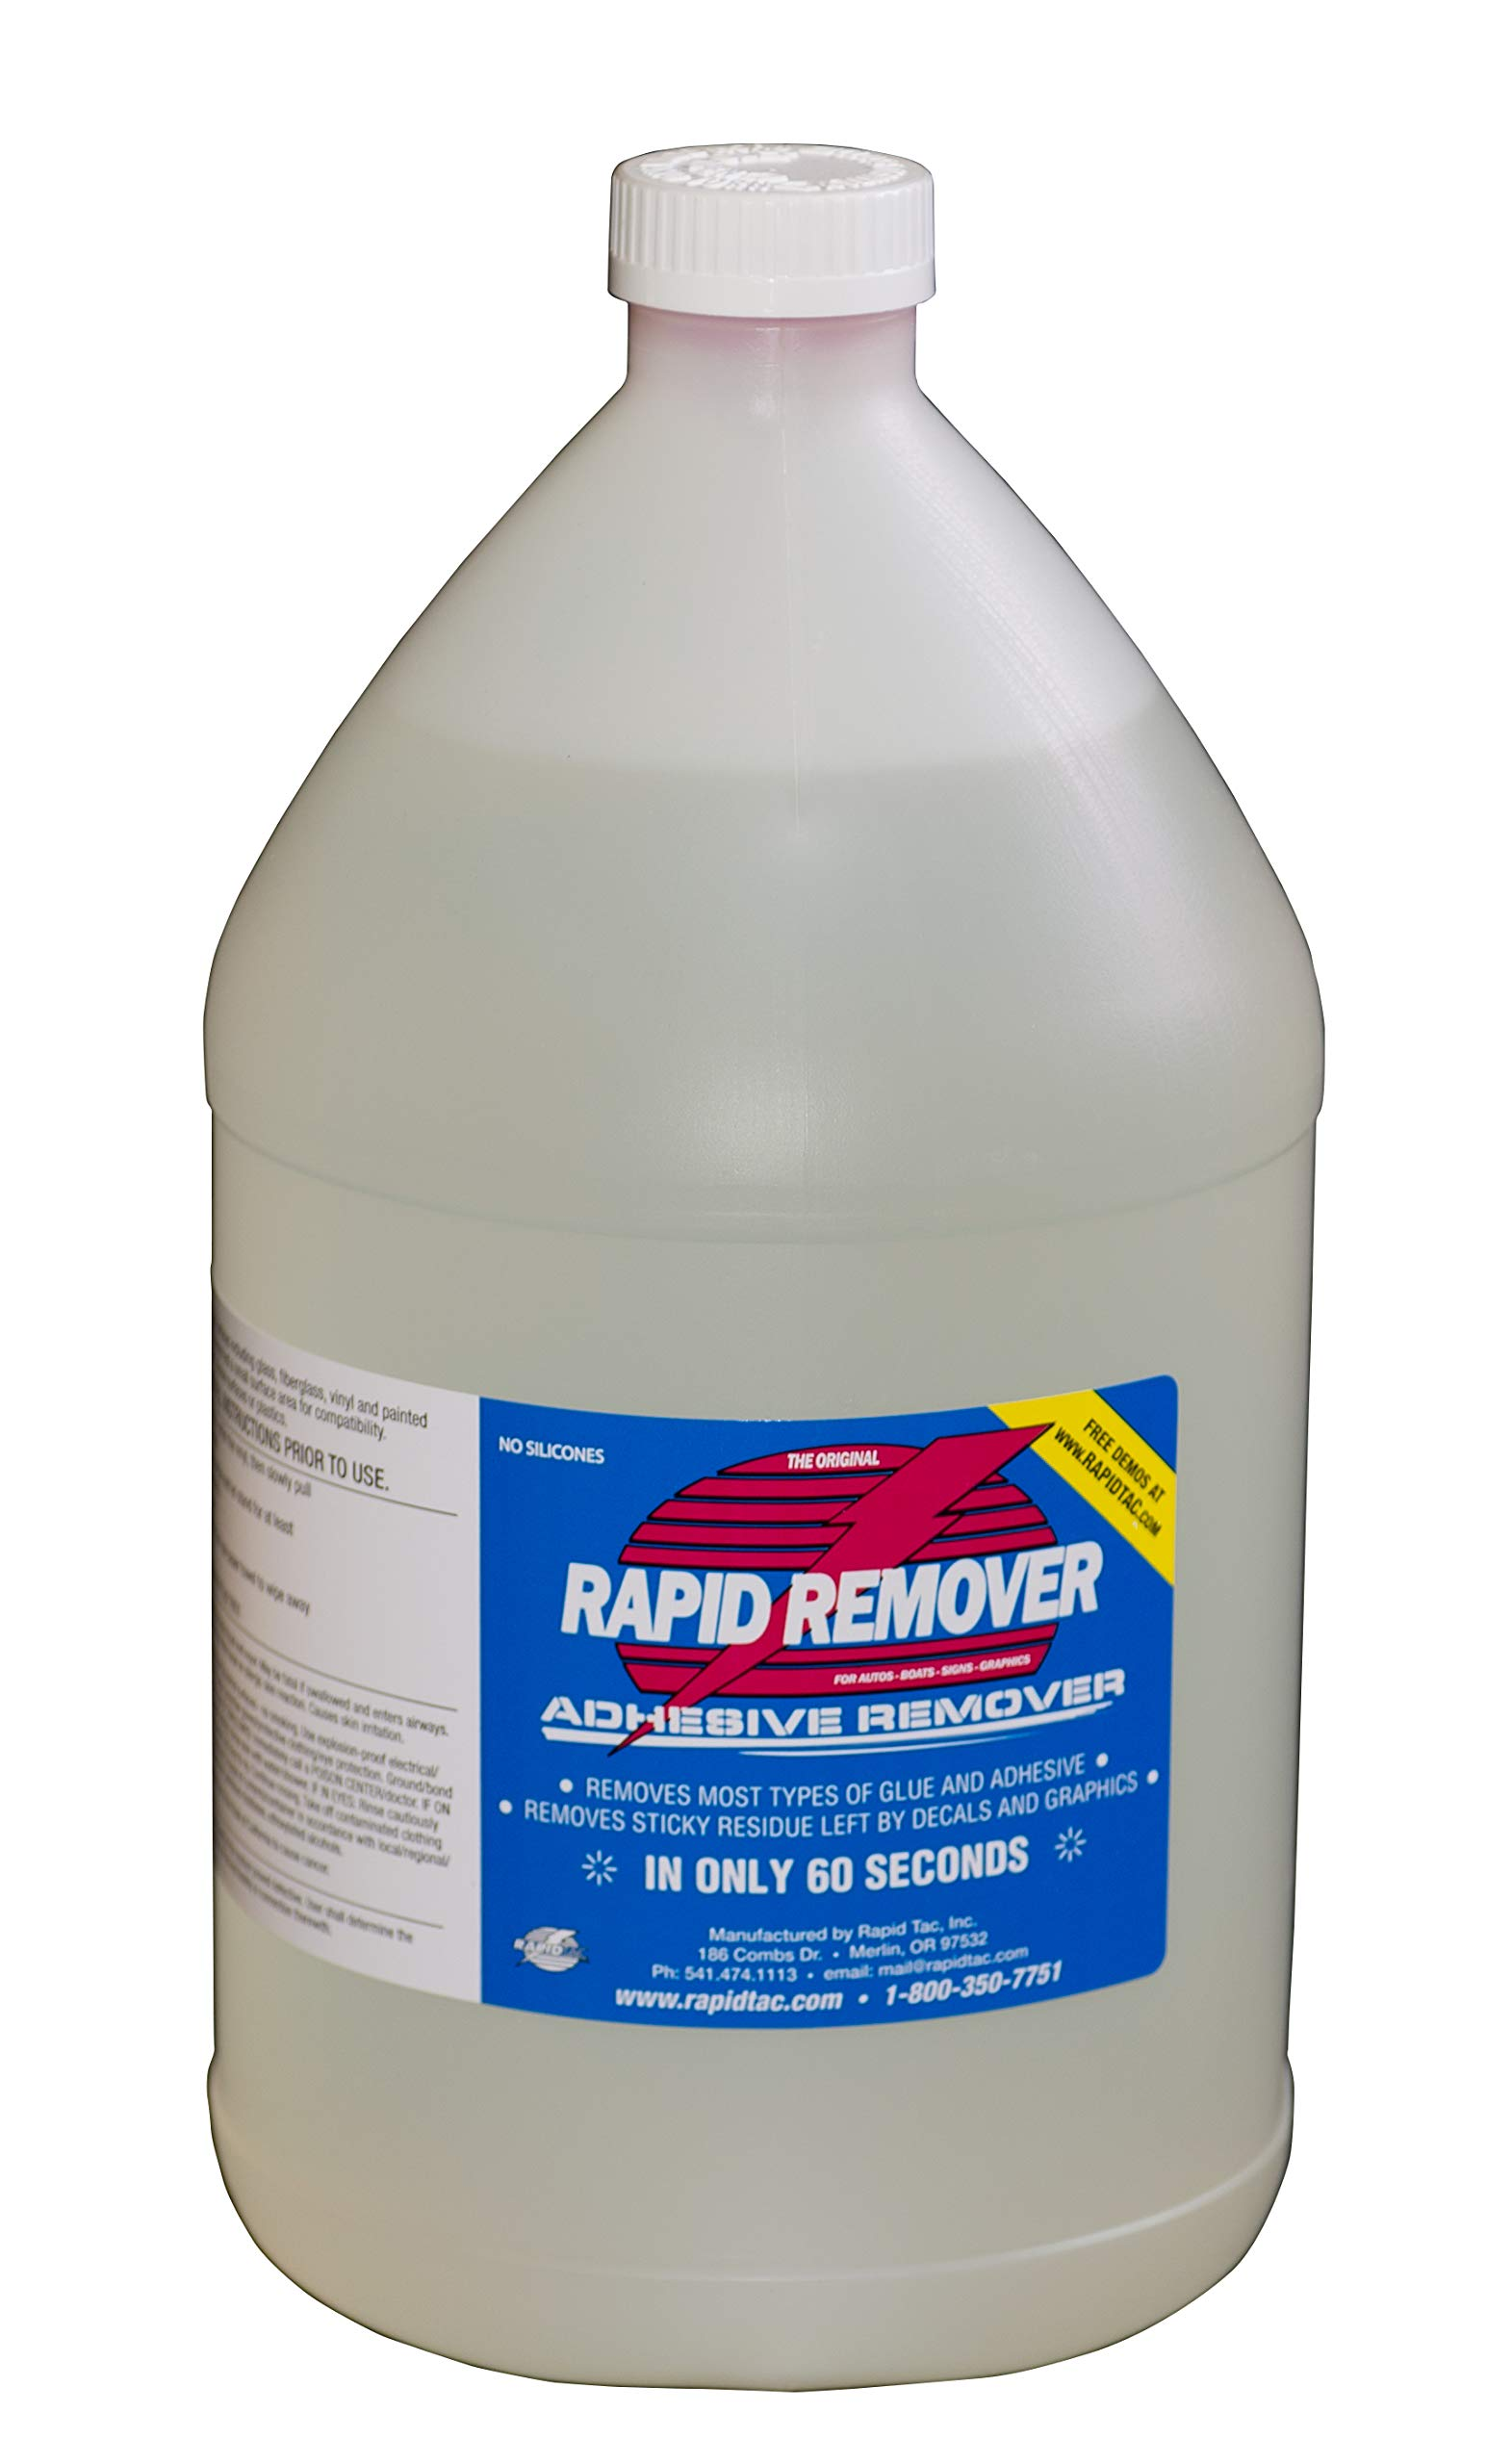 RapidTac RAPID REMOVER Adhesive Remover for Vinyl Wraps Graphics Decals Stripes 1 Gallon Bottle